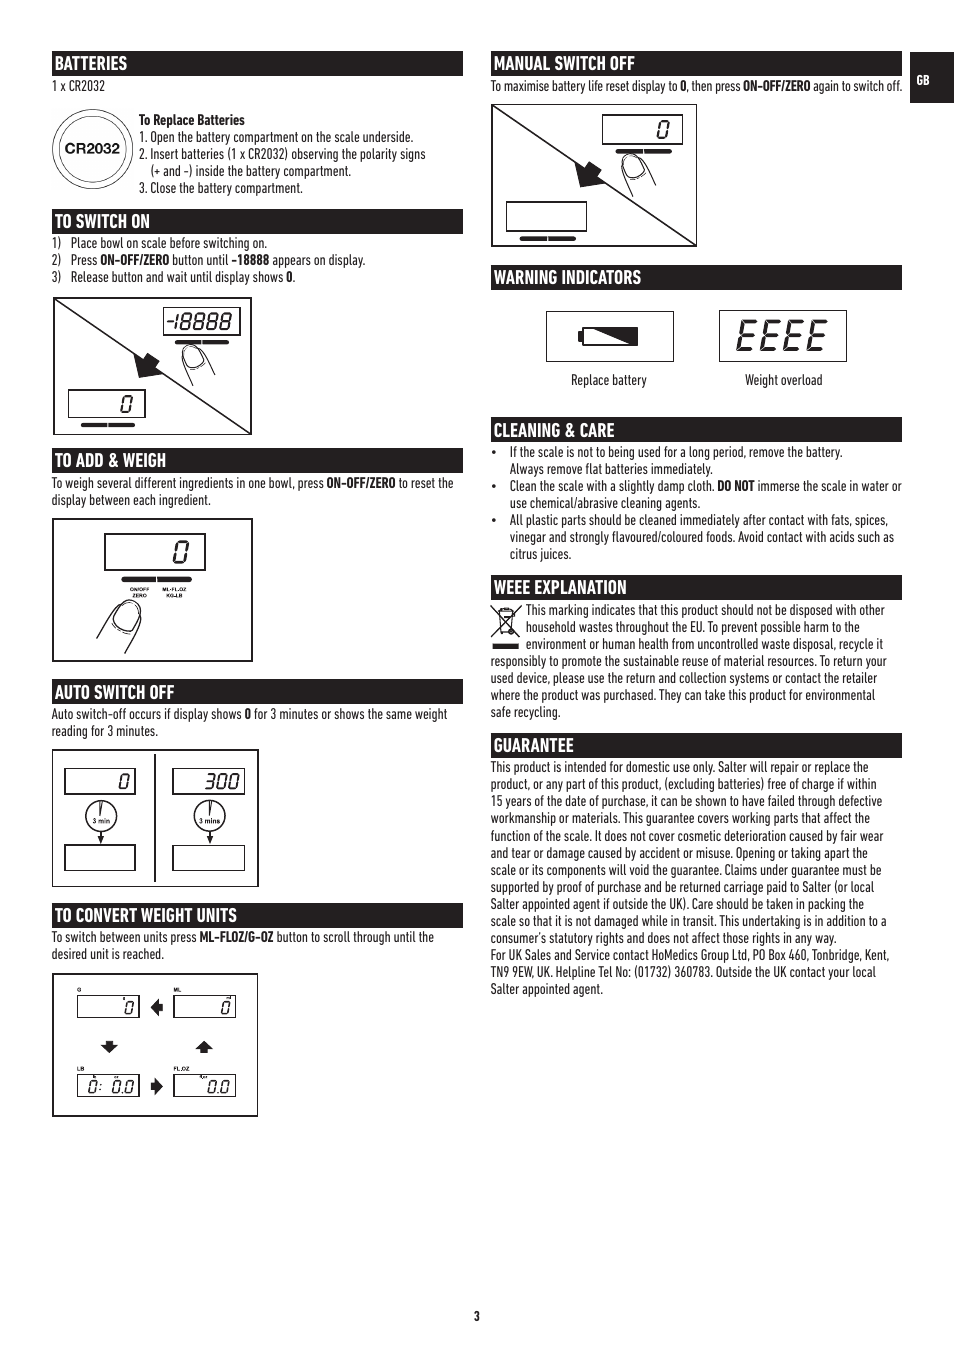 Batteries Auto Switch Off Manual Switch Off Salter